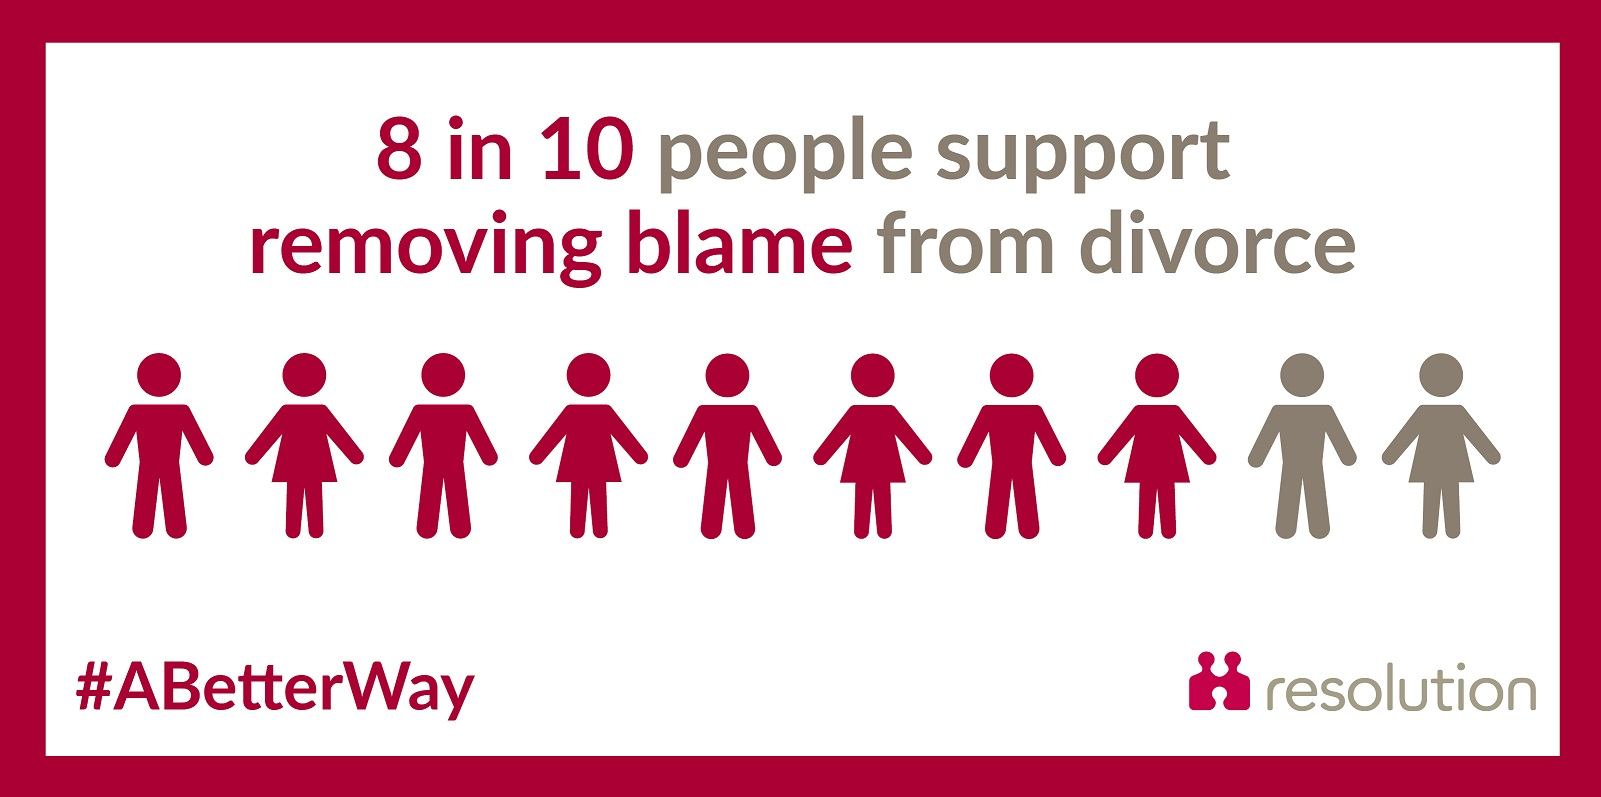 8 in 10 people support removing blame from divorce